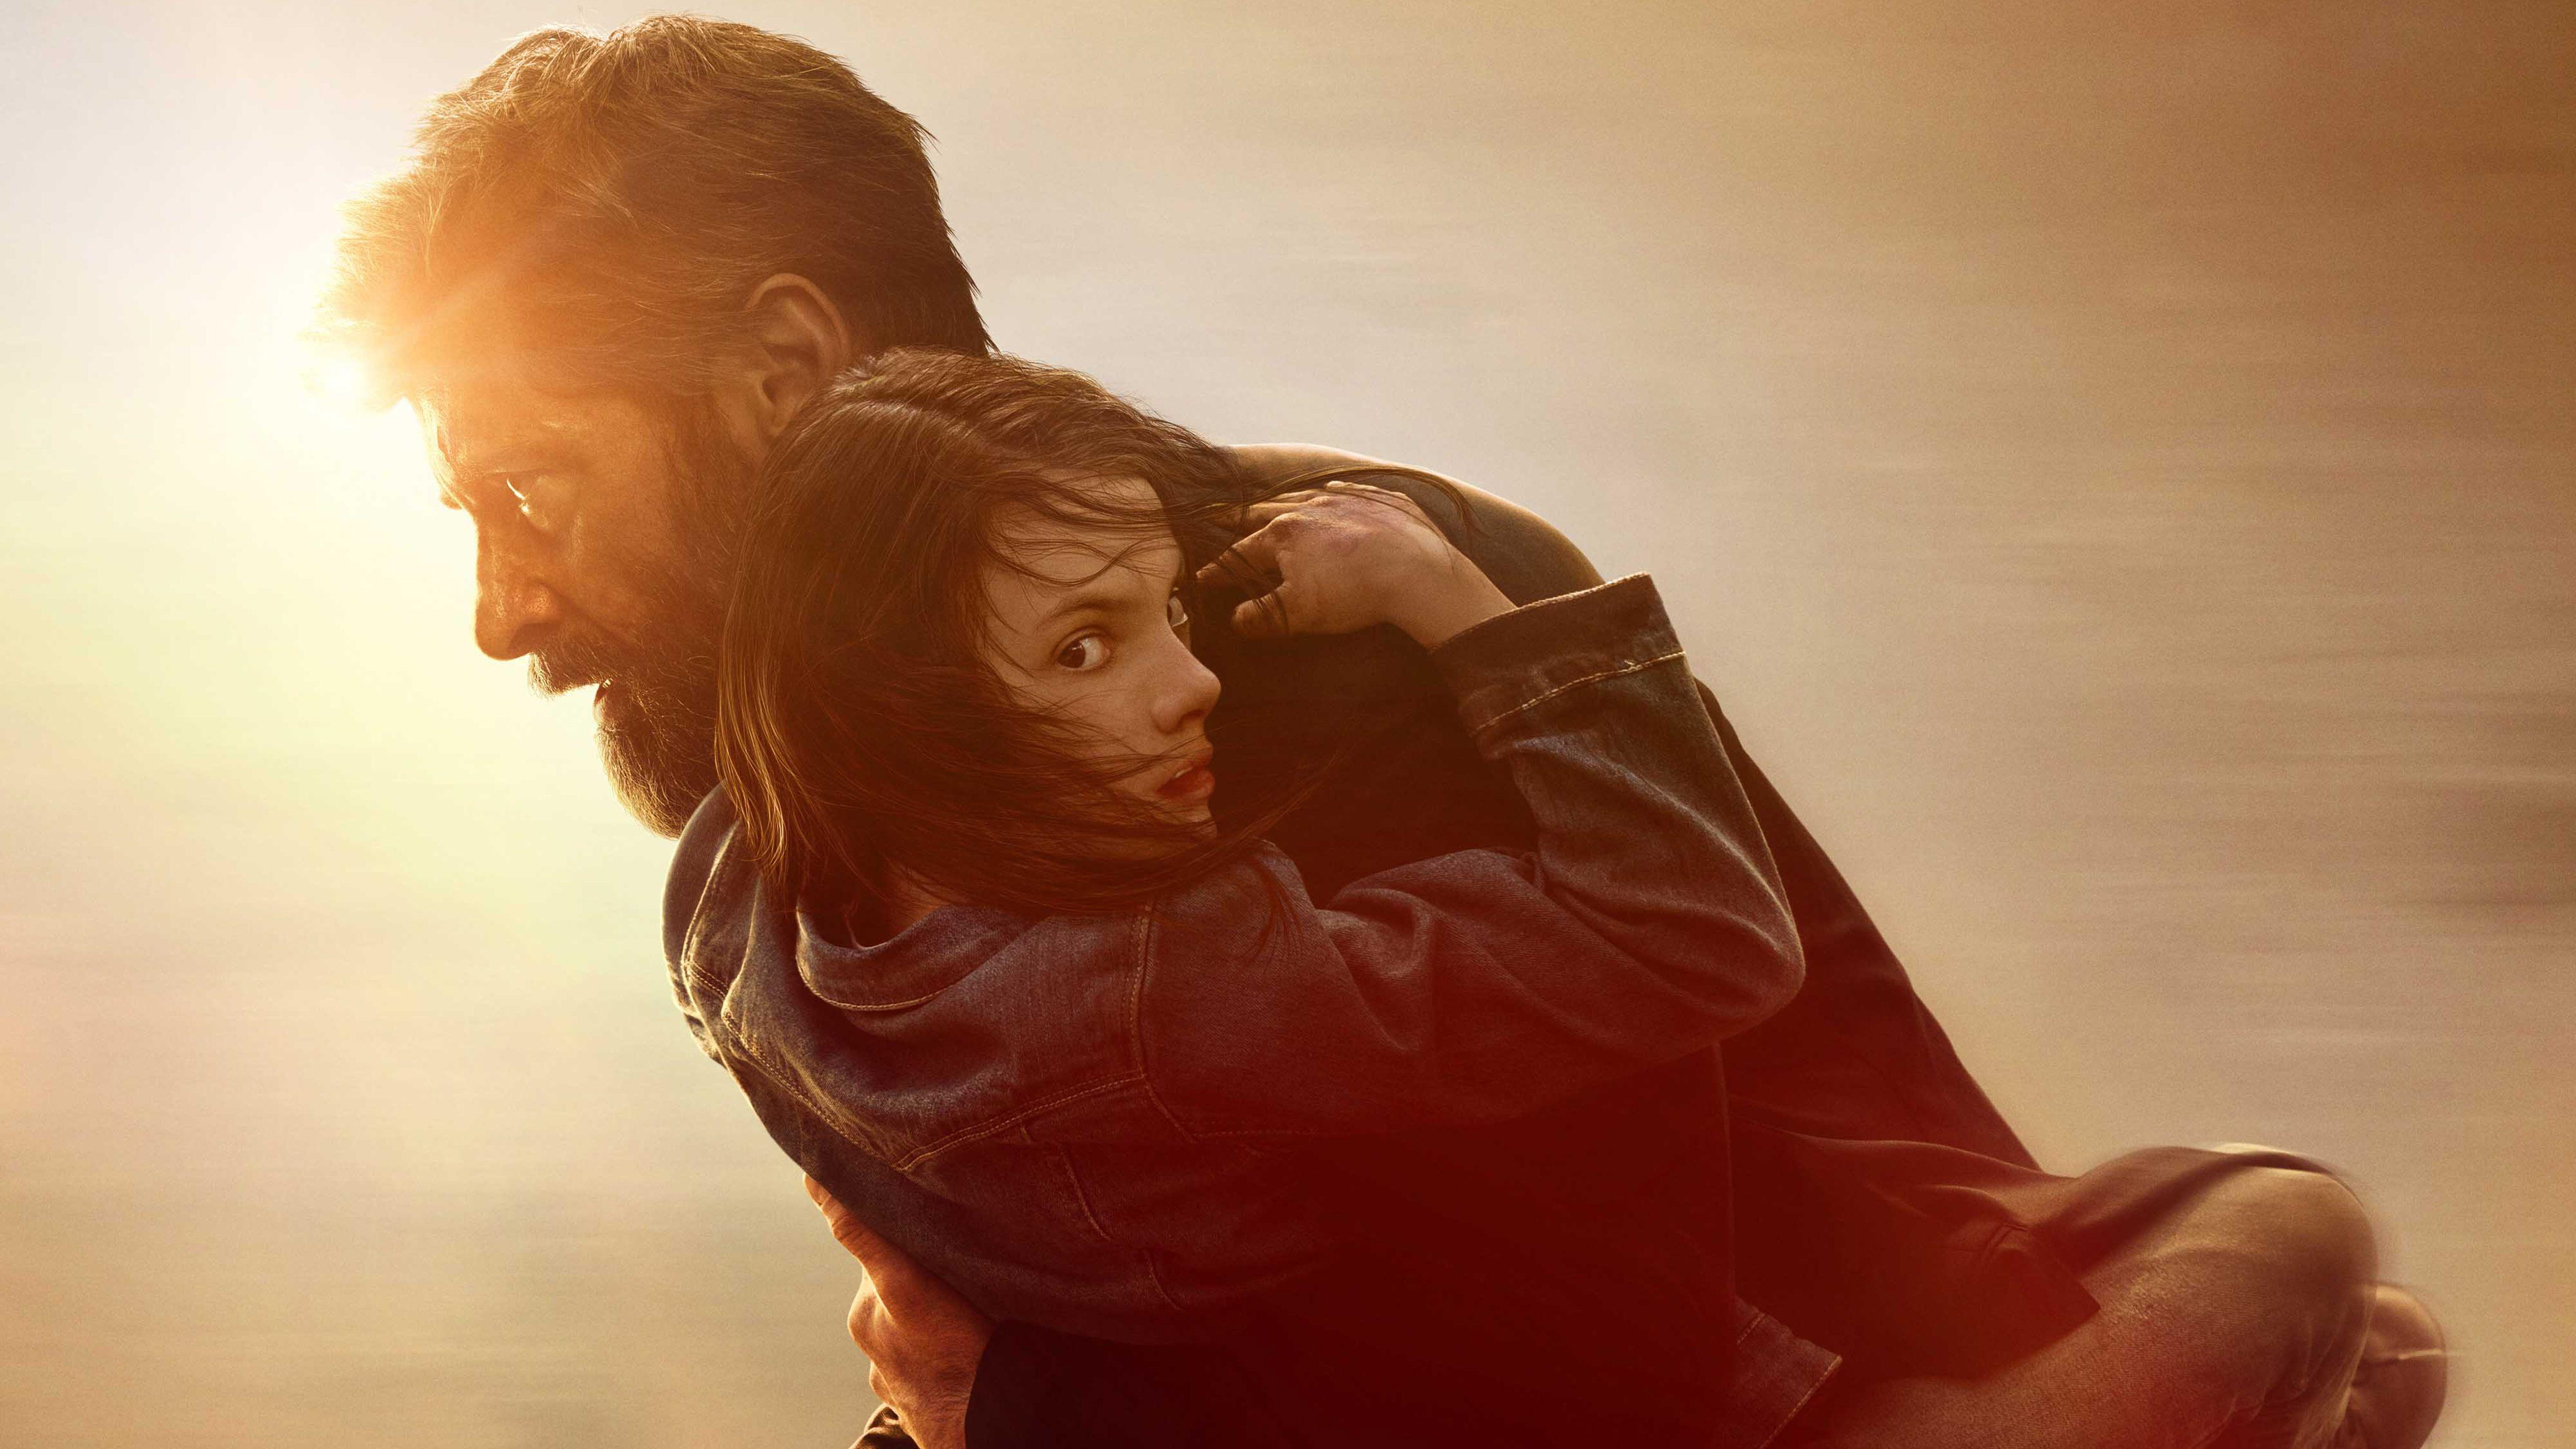 Logan 2017 Movie 5K - This HD wallpaper is based on Logan N/A. It ...